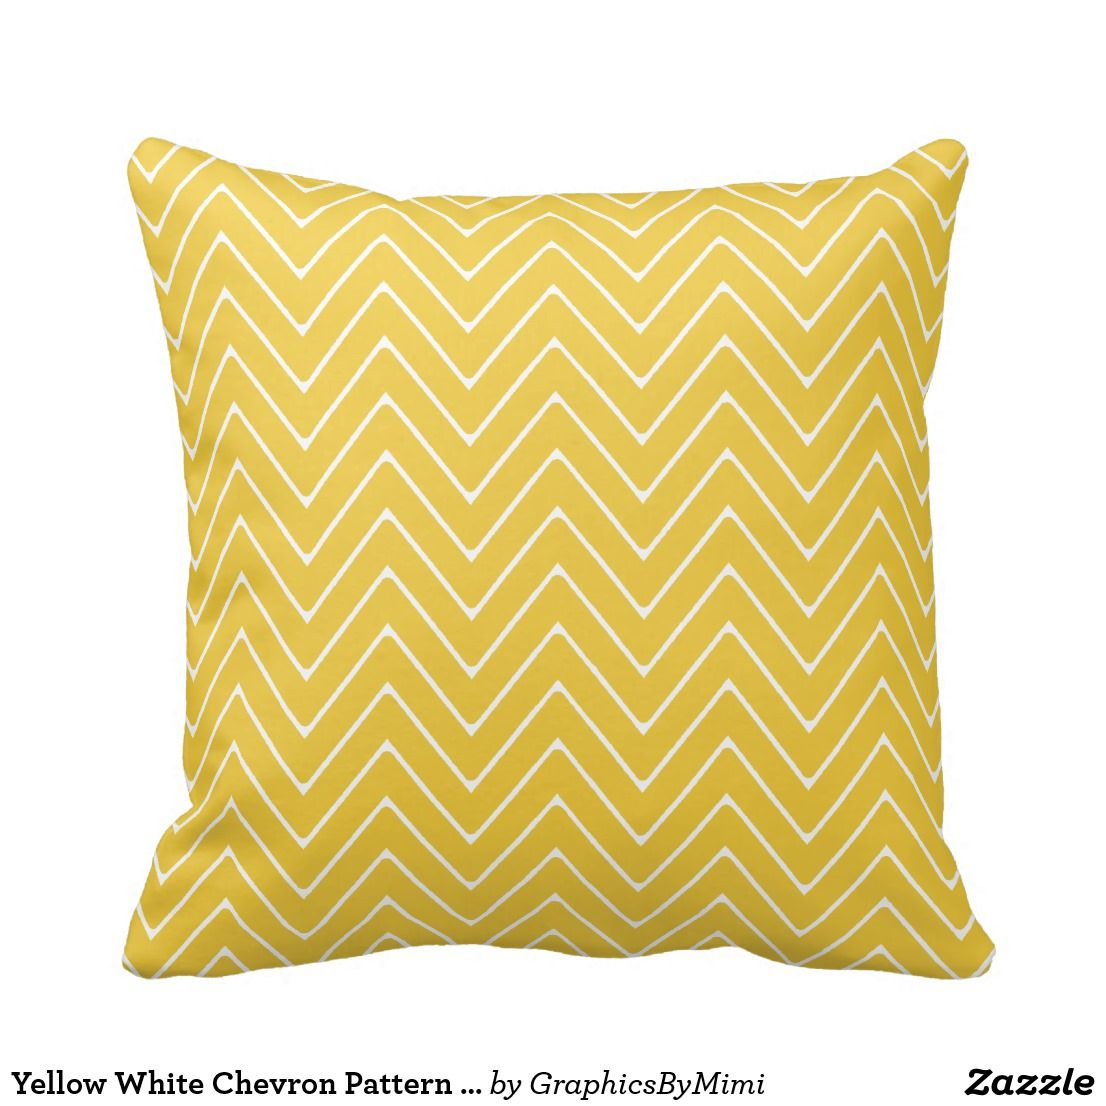 Dijon Pillows Grey White And Mustard Yellow Decorative Pillows Yellow Living Room Yellow Home Decor Living Room Decor Brown Couch